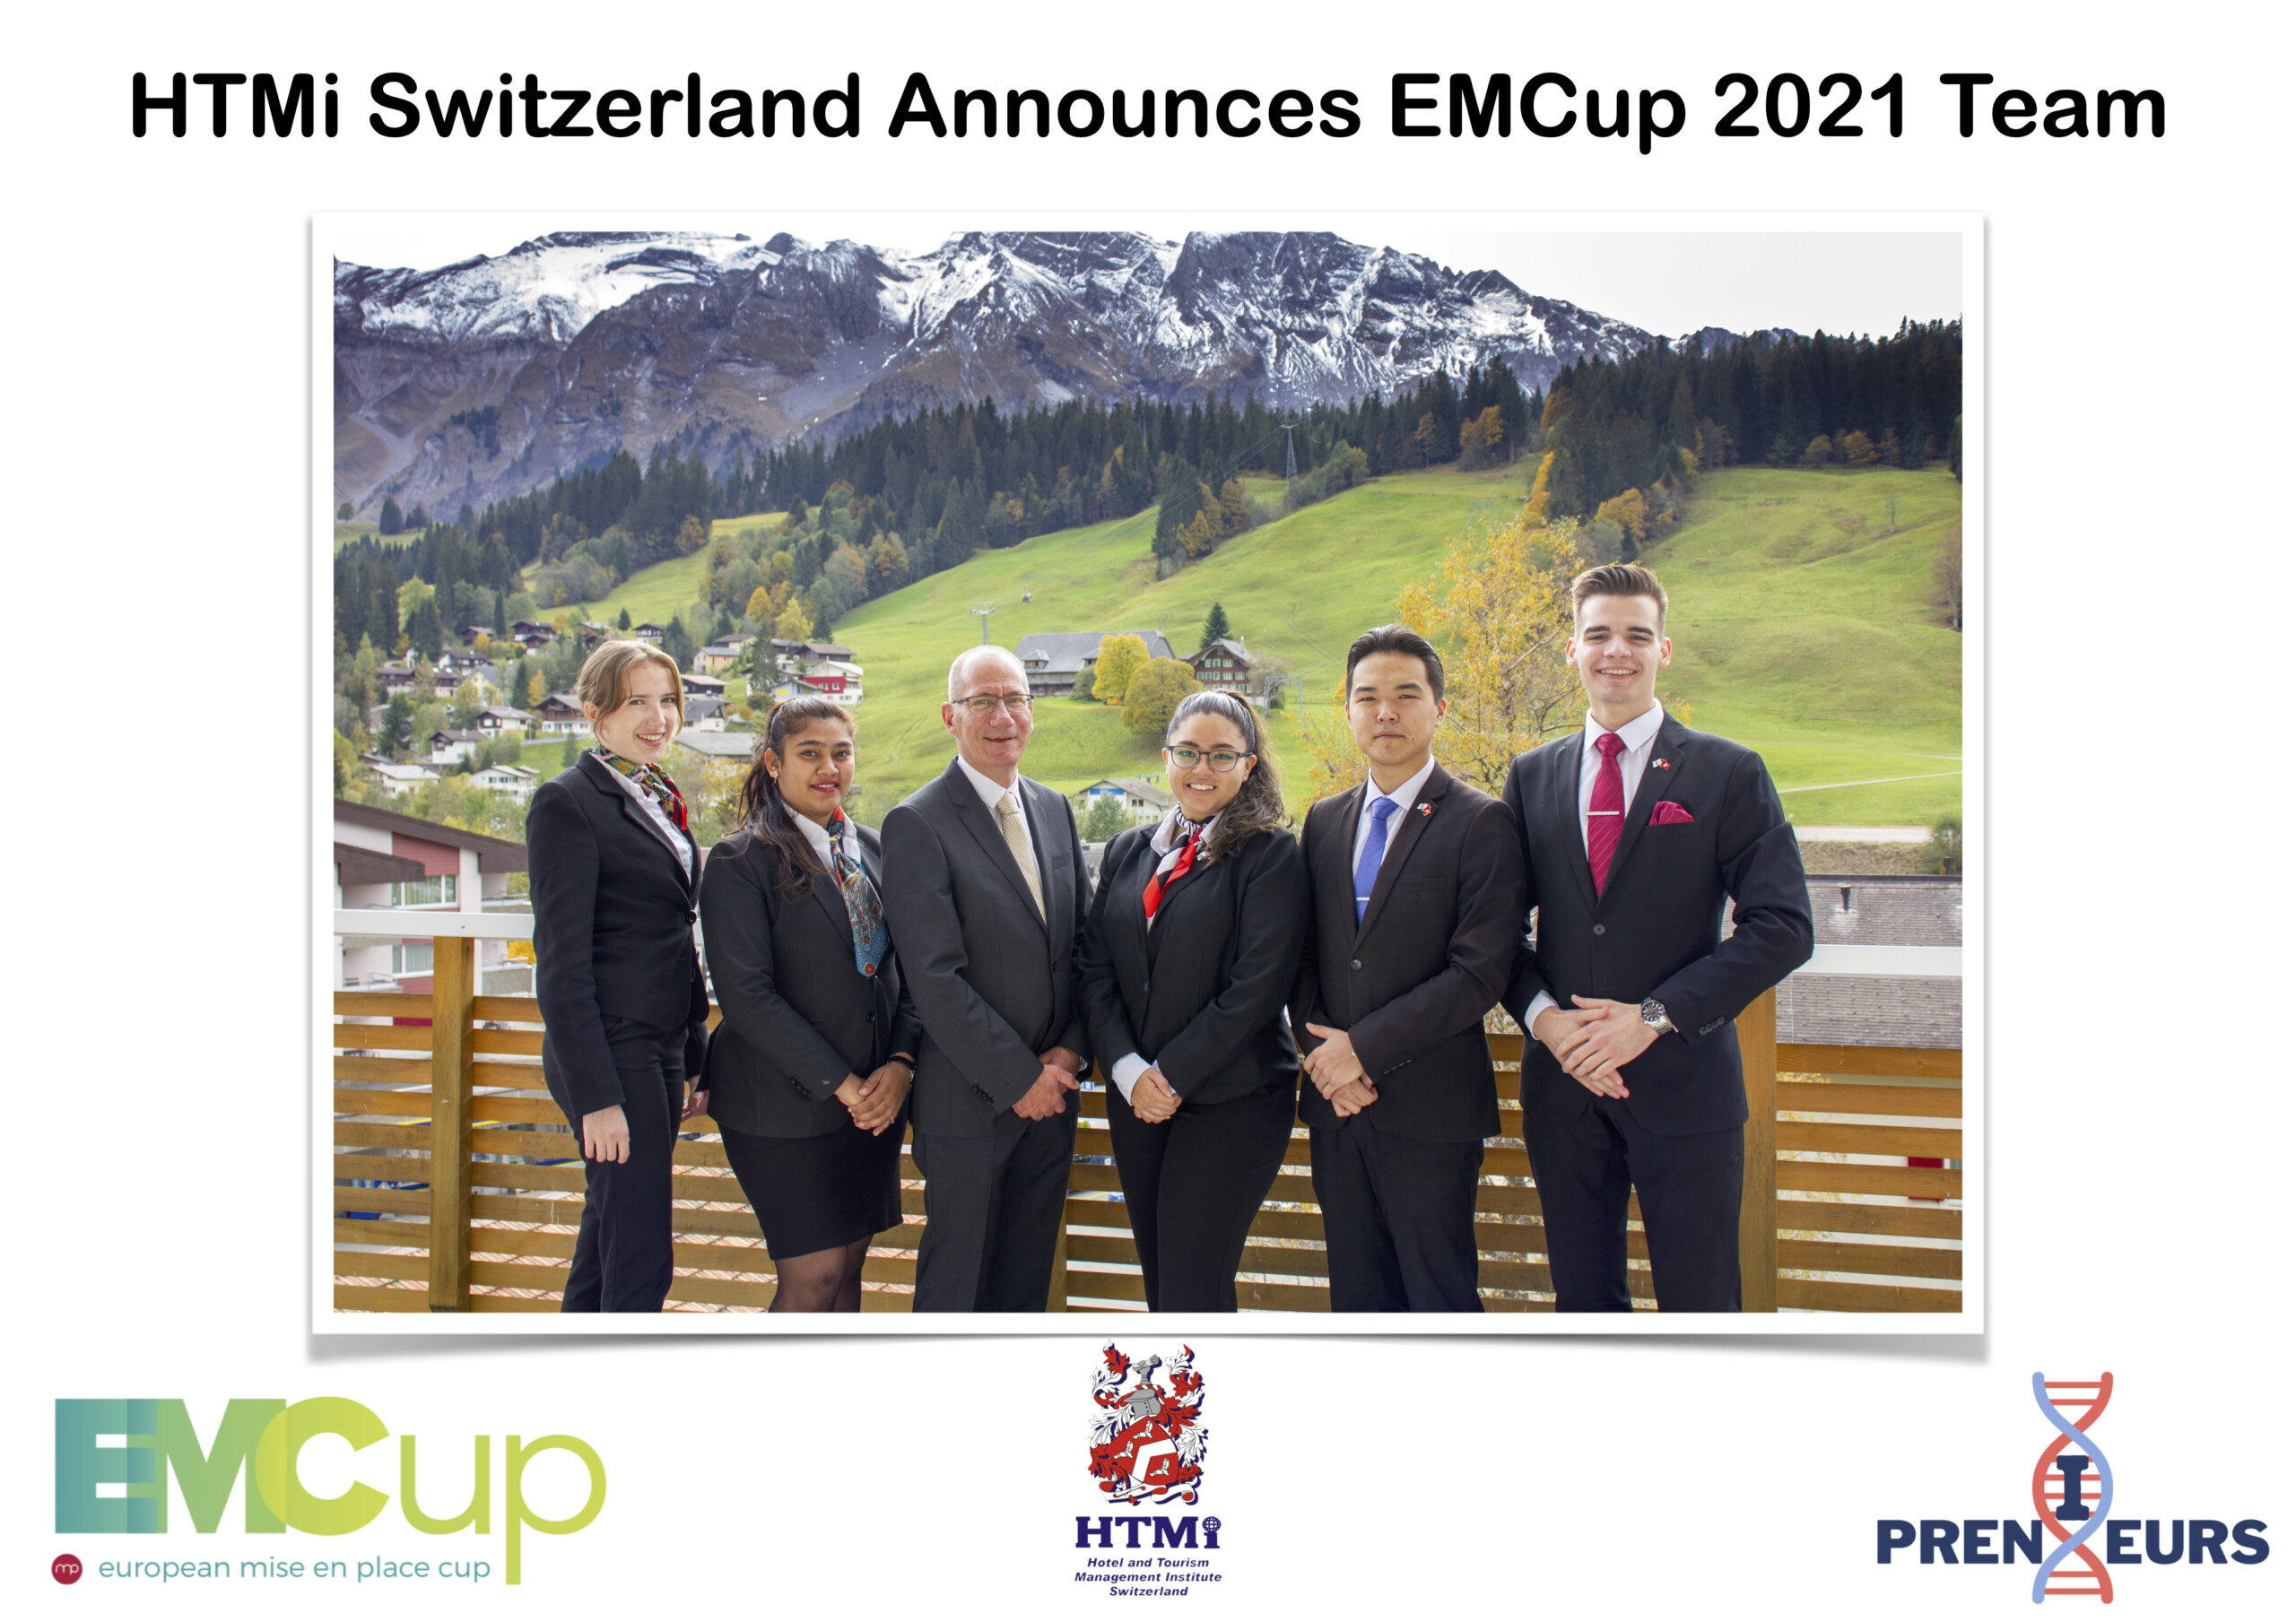 HTMi Switzerland Announces EMCup 2021 Team